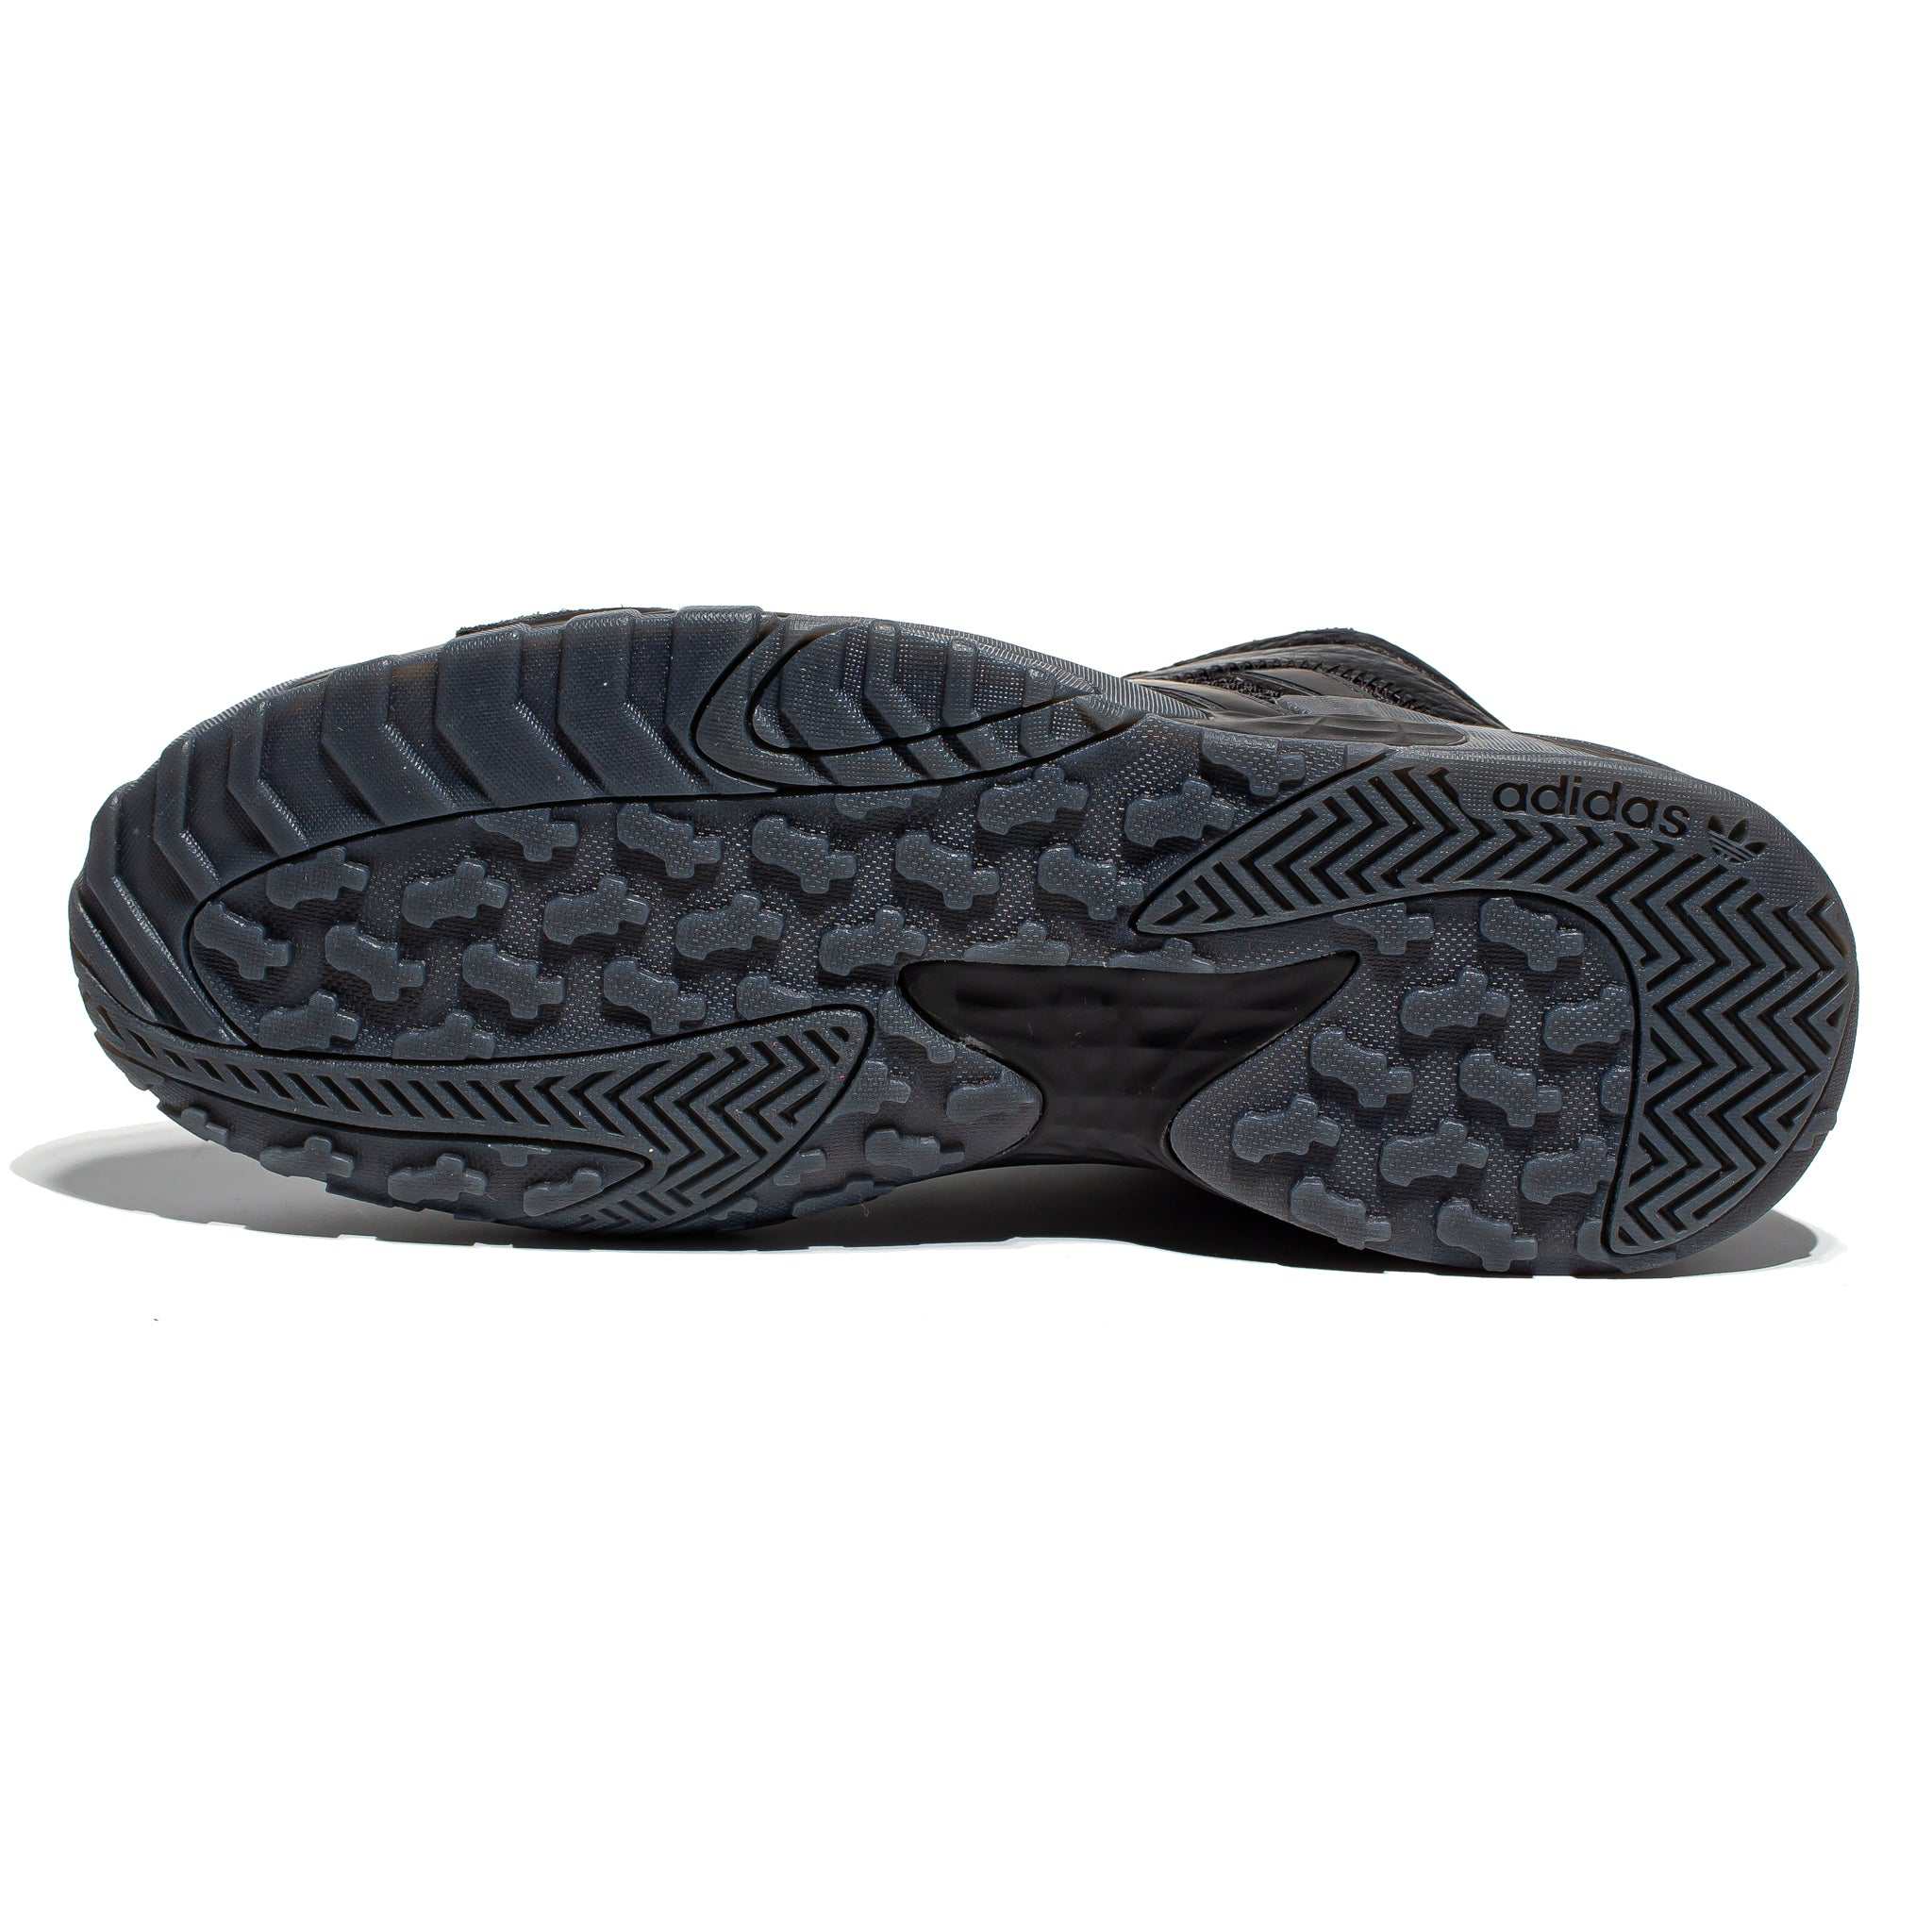 ADIDAS Streetball Core Black/Carbon